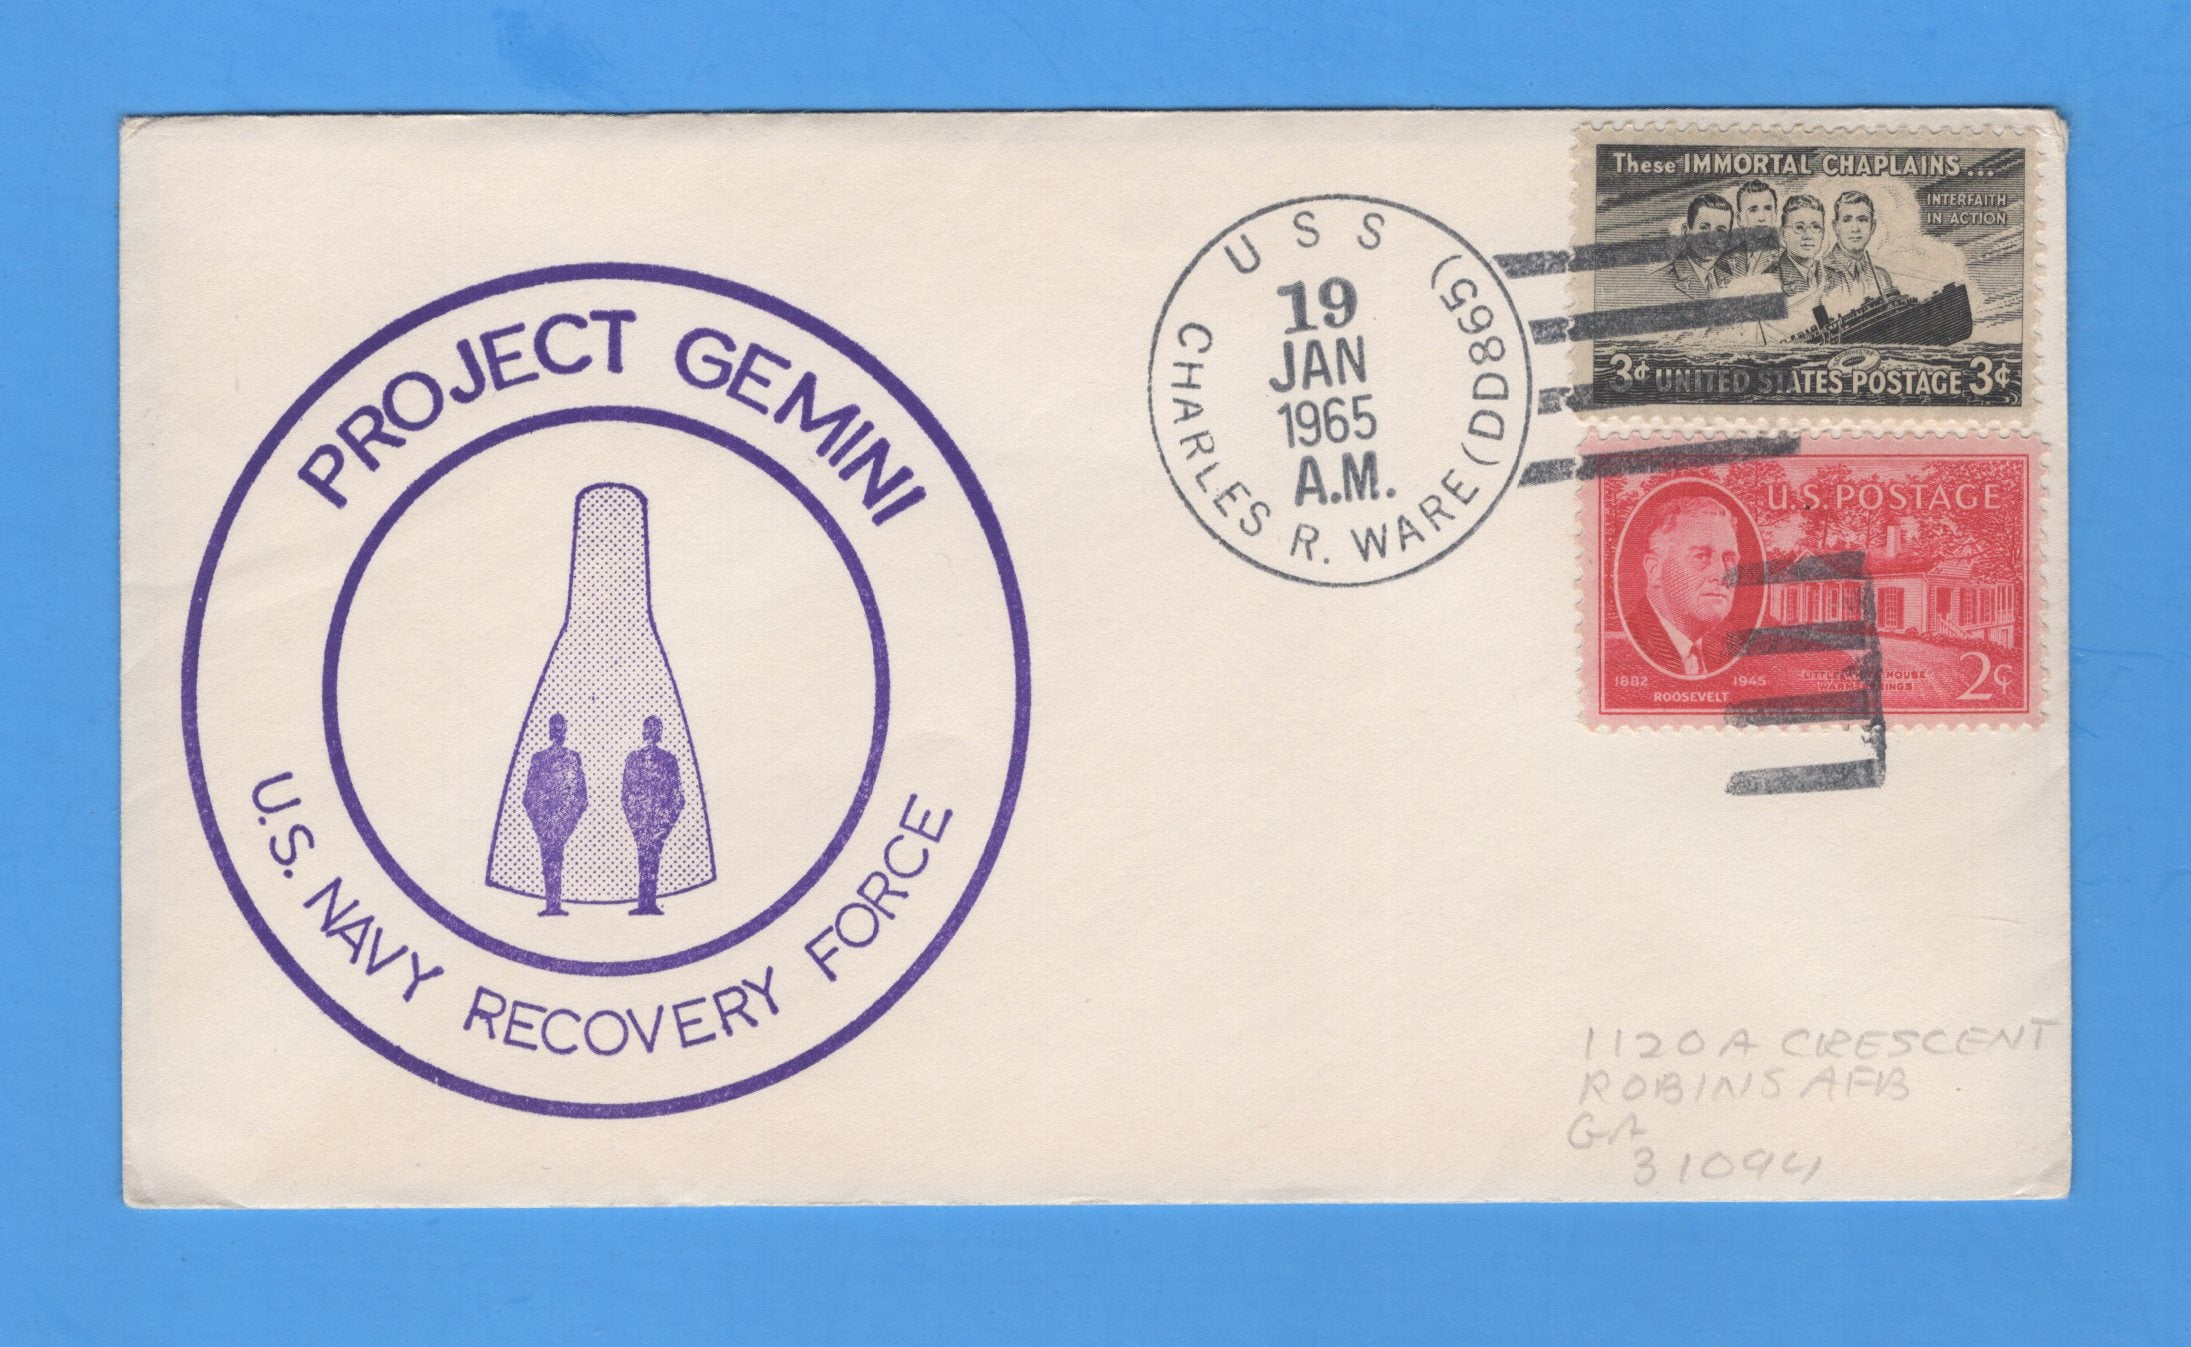 USS Charles R. Ware DD-865 Gemini 2 Navy Recovery Force January 19, 1965